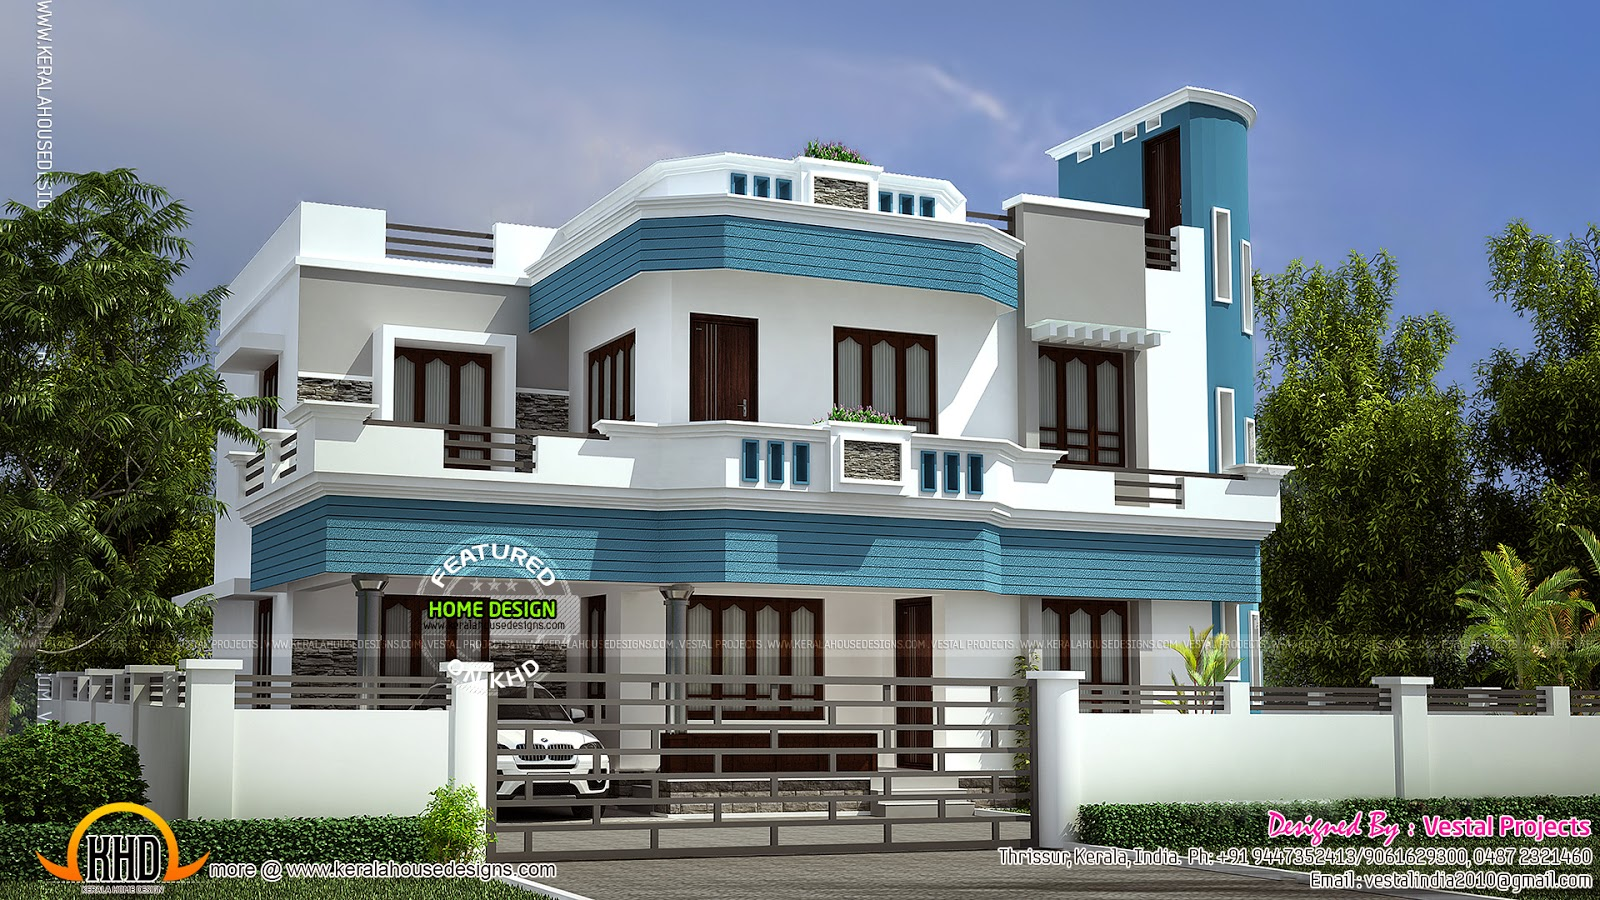 Awesome house by vestal projects kerala home design and for House design images